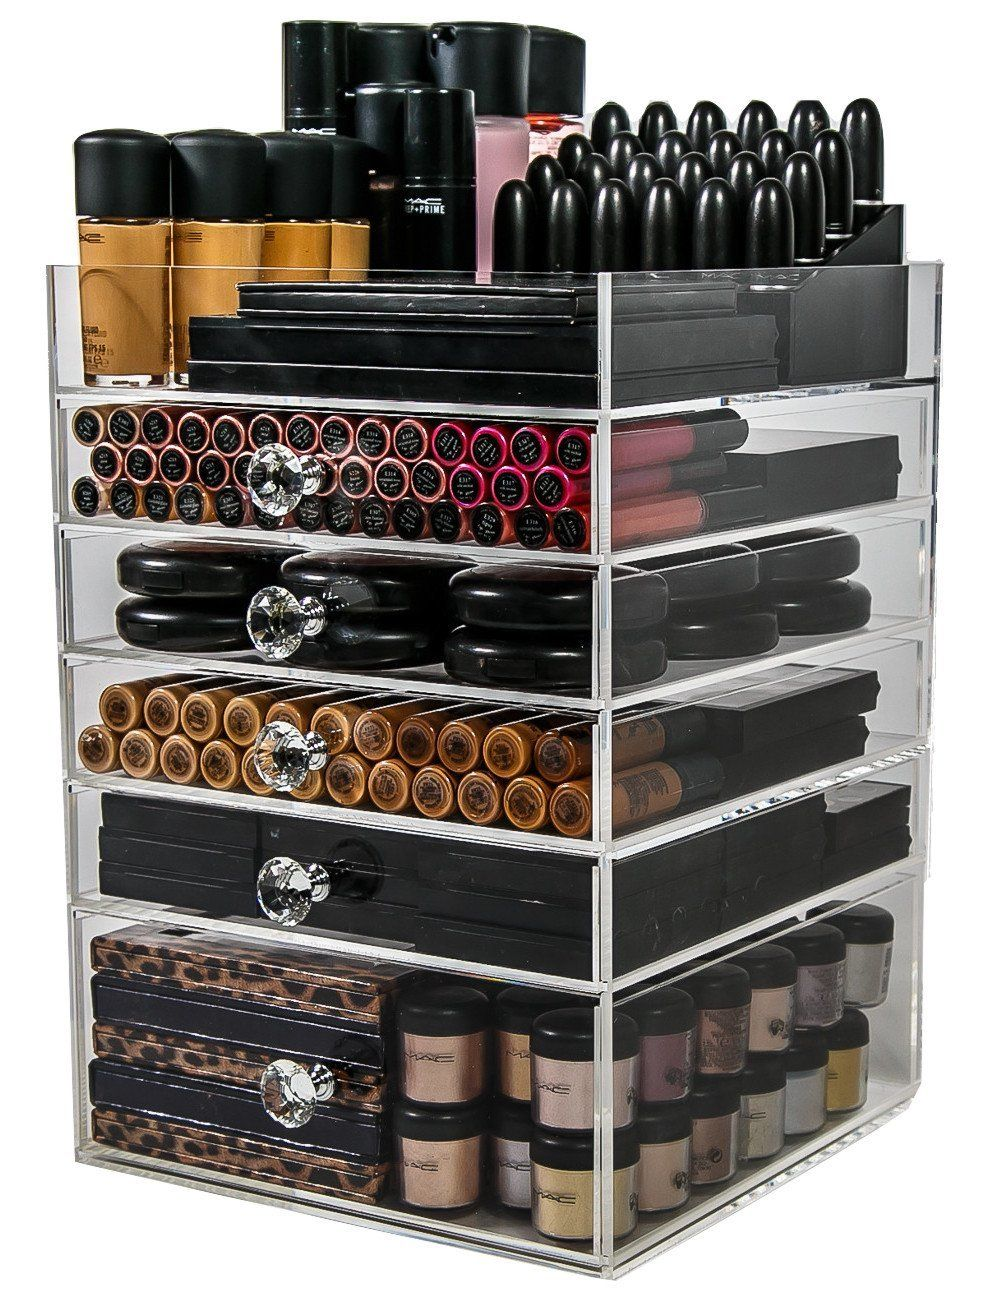 Amazon.com: Acrylic Makeup Organizer Cube | 5 Drawers Storage Box ...